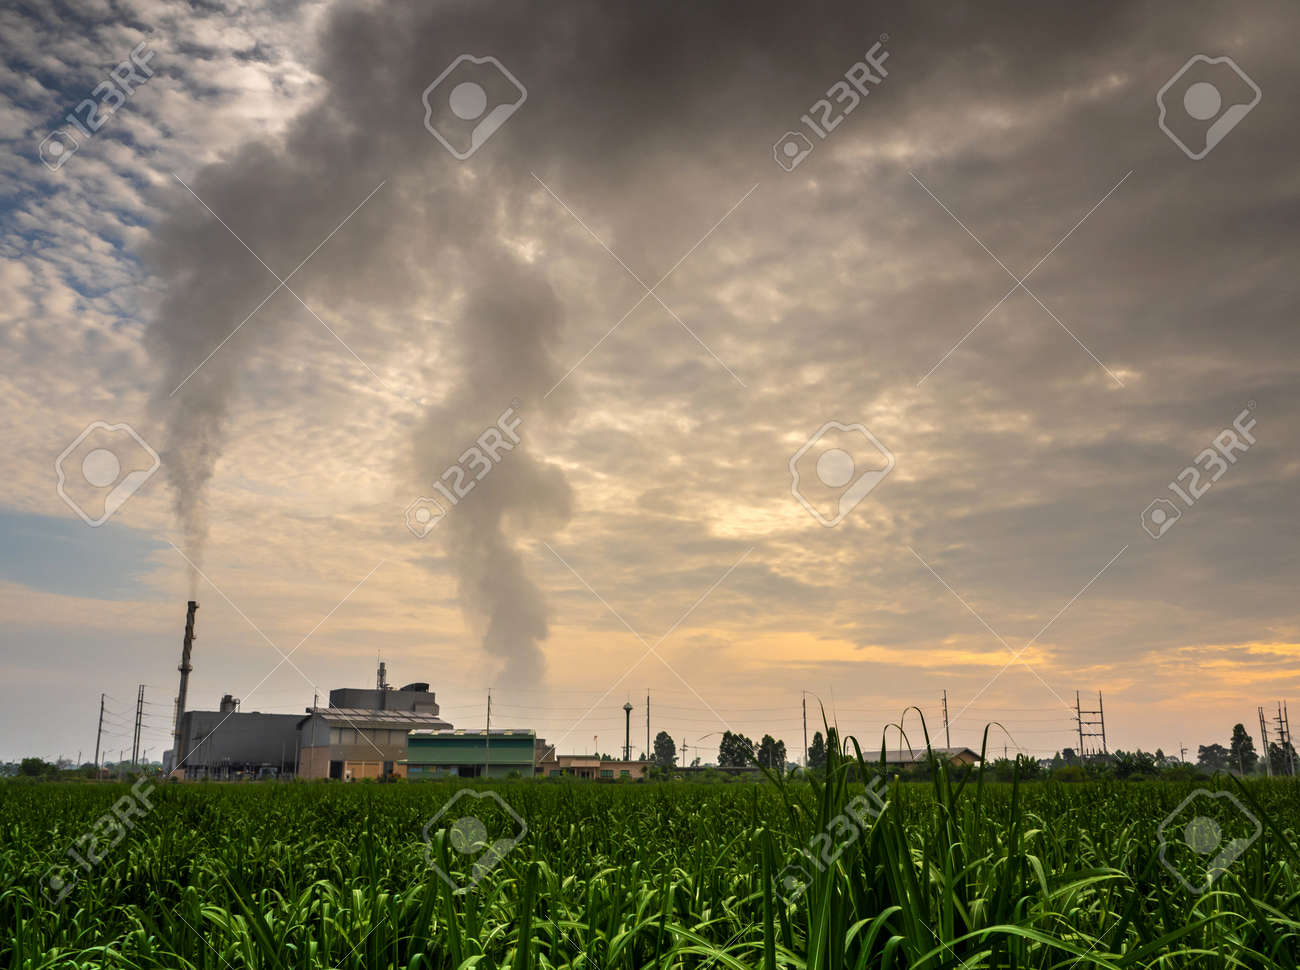 Smoke from the boiler and the steam from the cooling tower in the power plant. It is located in the middle of an agricultural area - 171433050